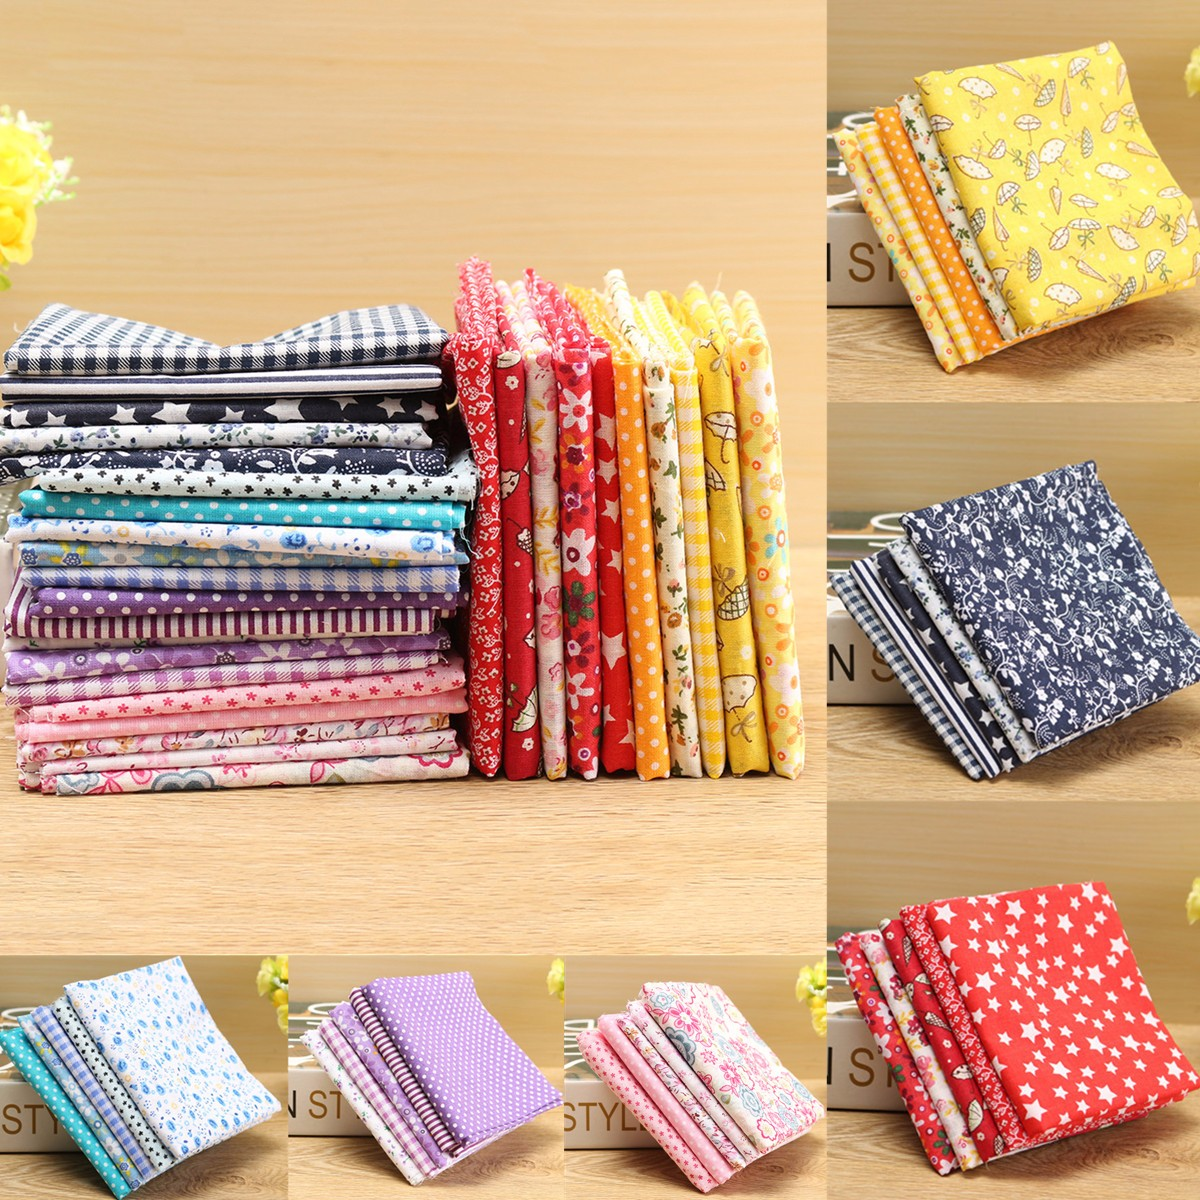 5pcs 50cm*50cm Assorted Pattern Floral Cotton Fabric Cloth For DIY Crafts Sewing